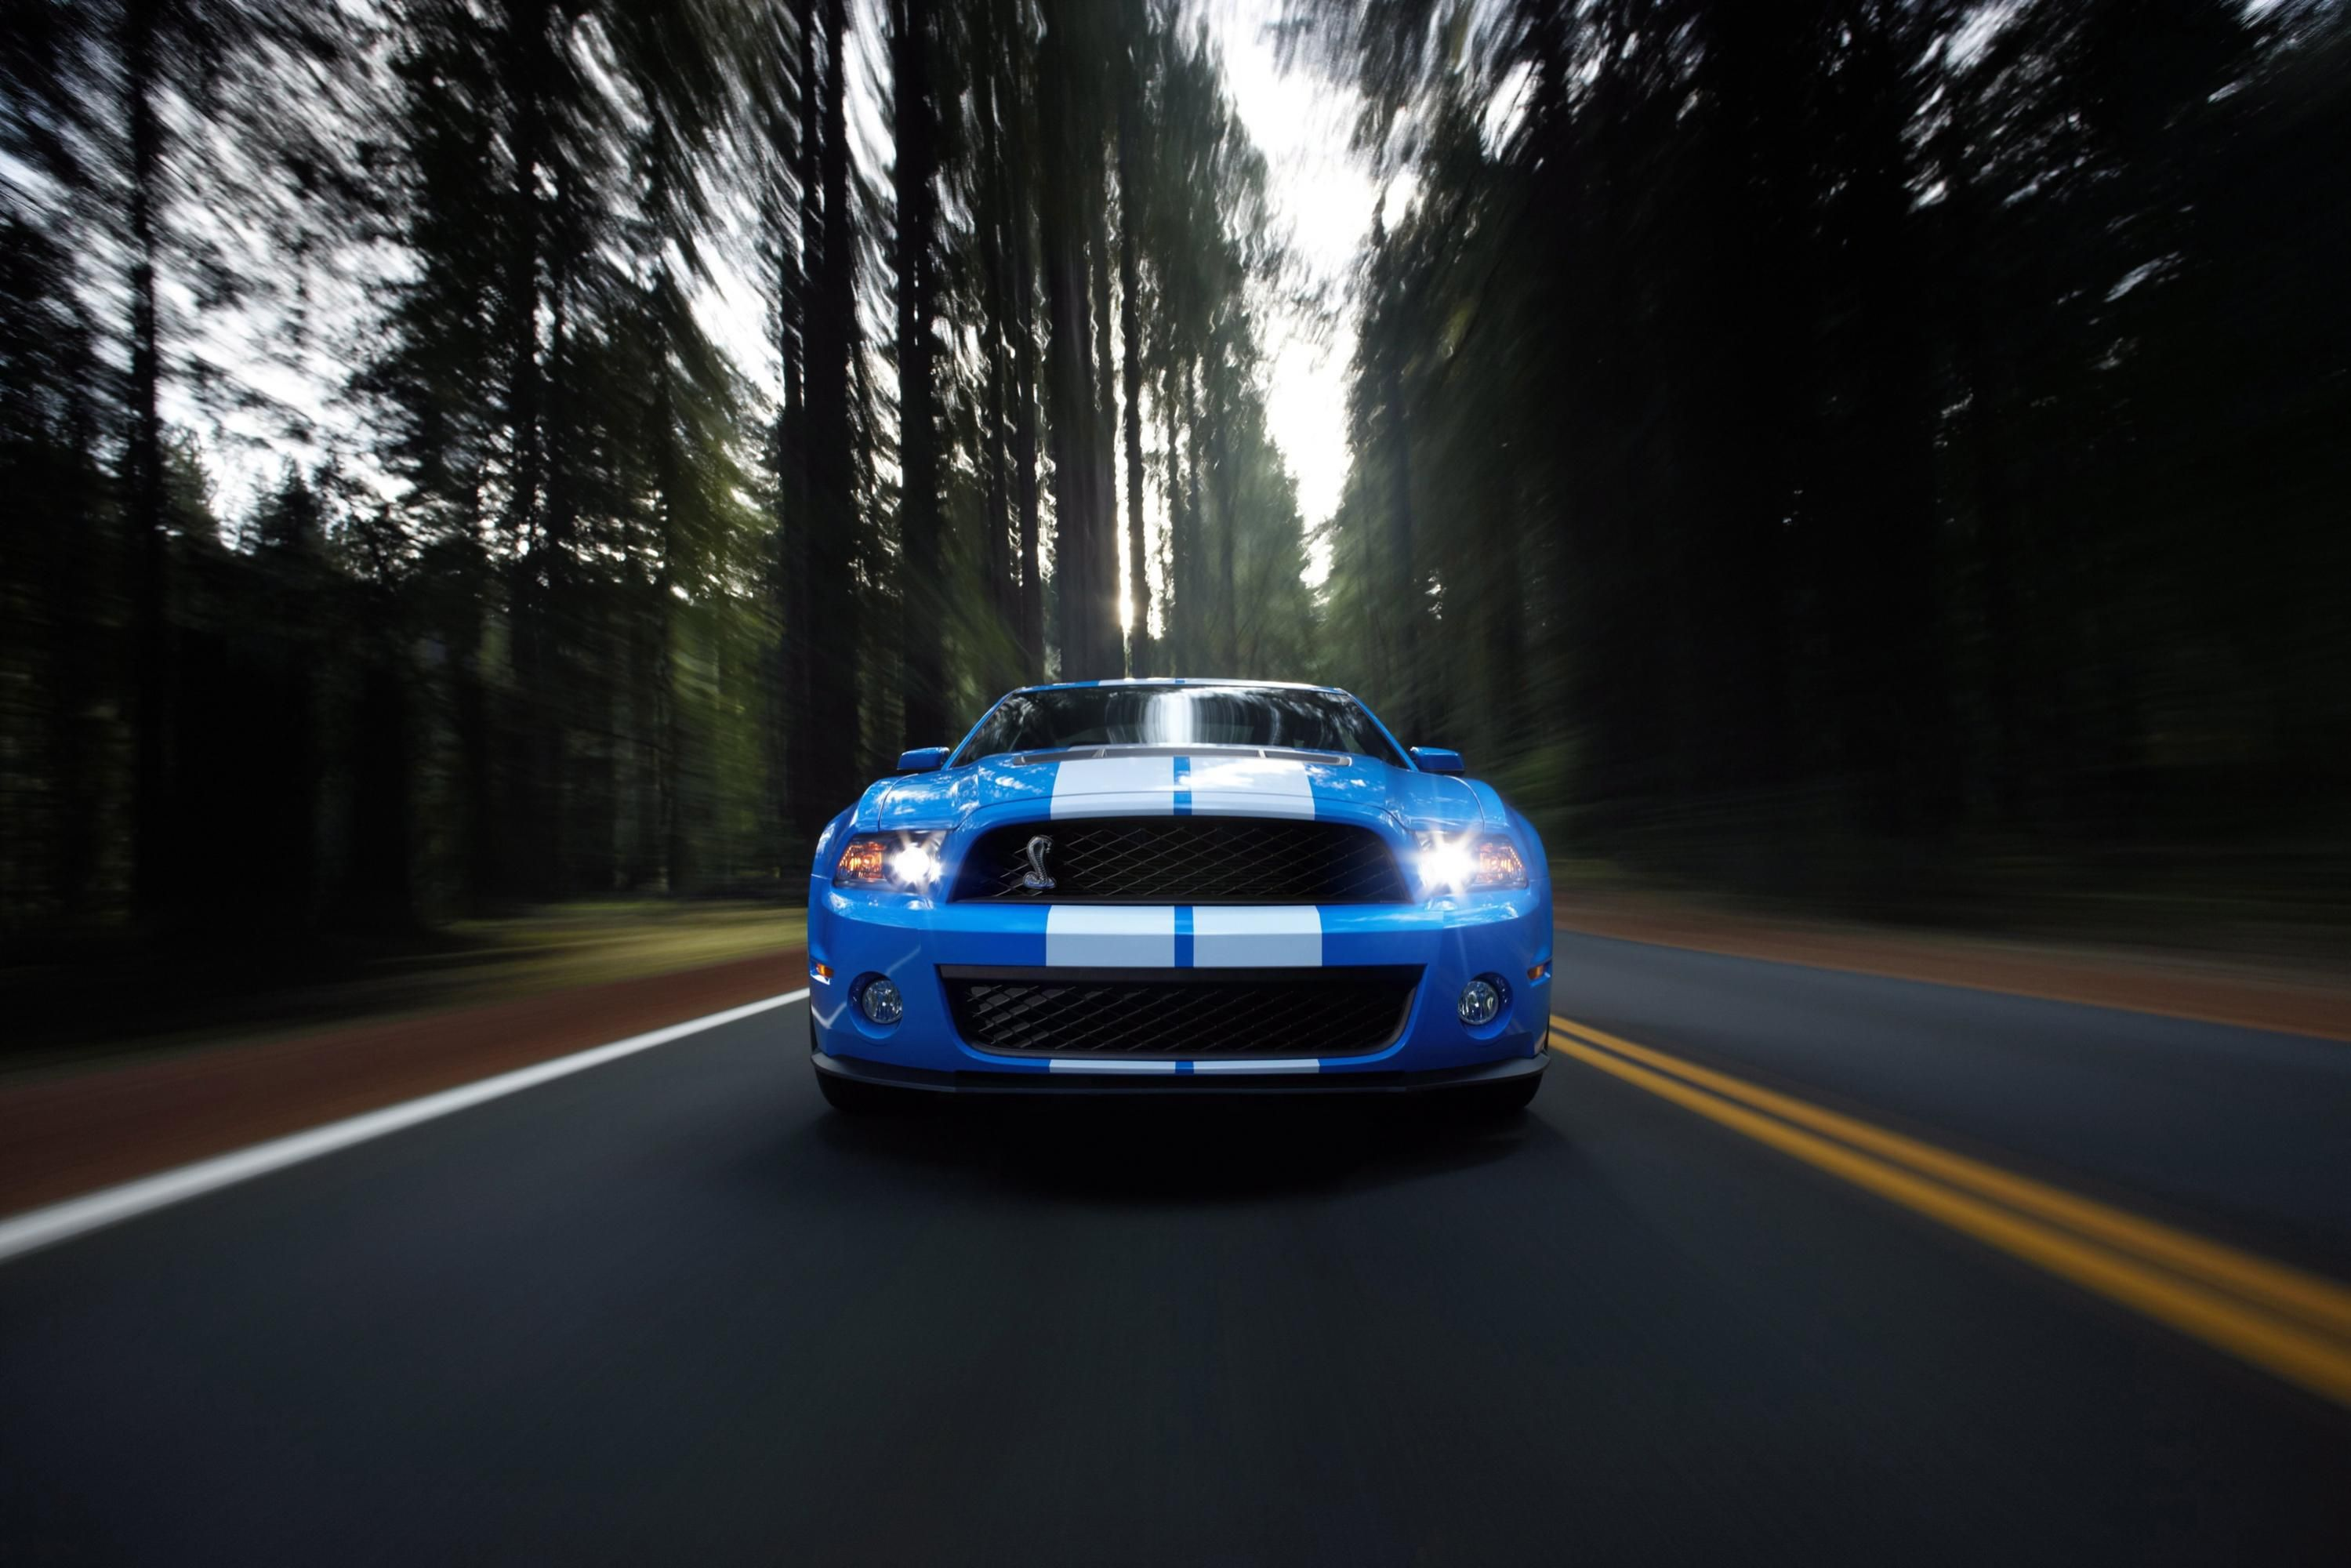 Pin By Cool Wallpapers On Mustangs Ford Mustang Ford Mustang Shelby Ford Mustang Shelby Gt